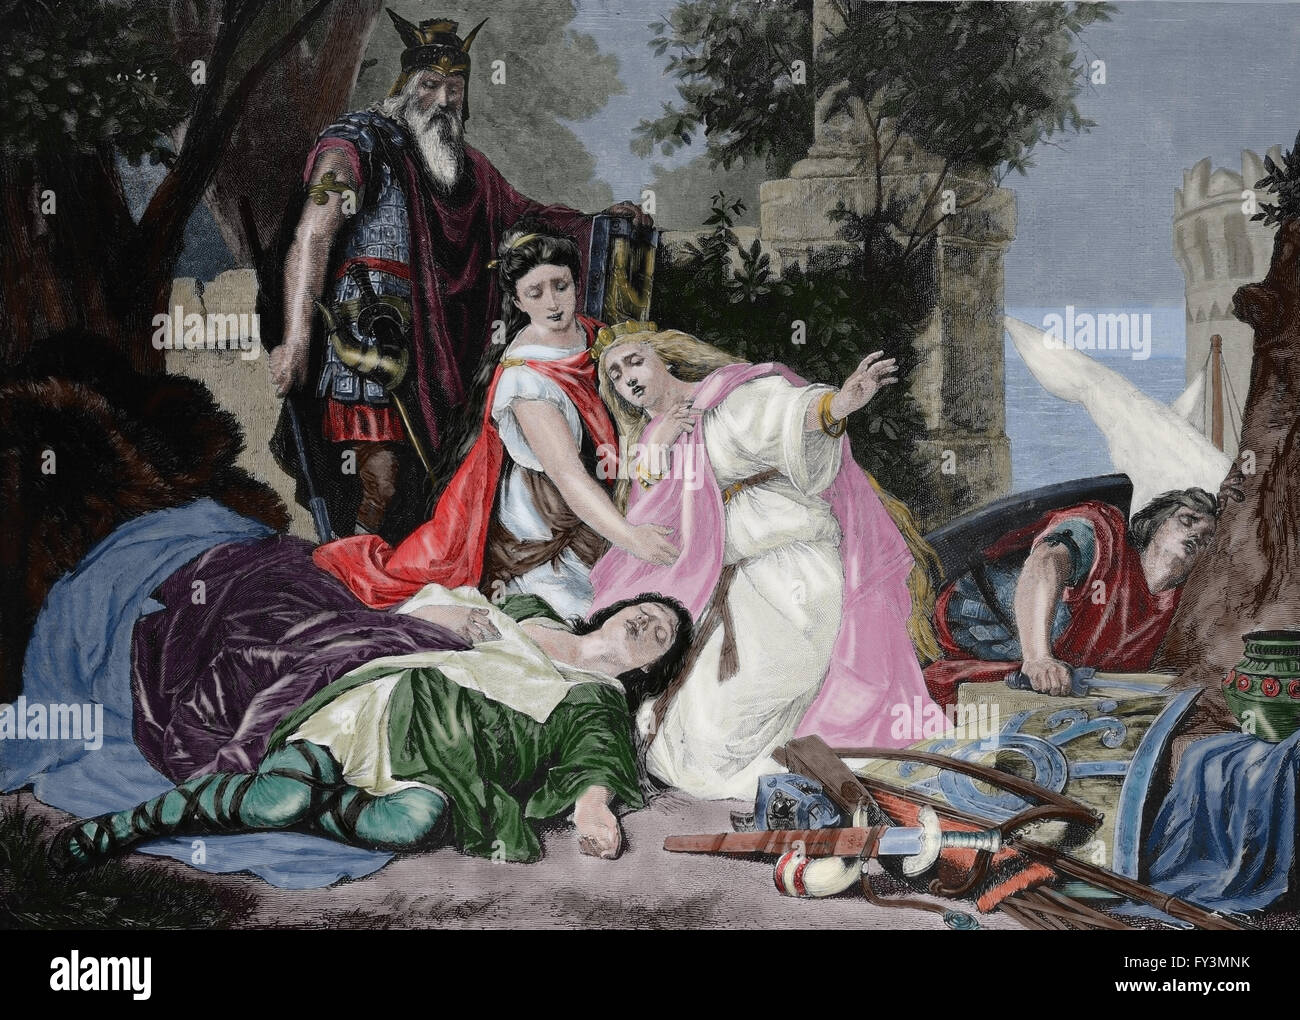 The Death of Tristan. German composer Richard Wagner 1813-1883. 'Tristan and Isolde'. Engraving, c. 1890. - Stock Image